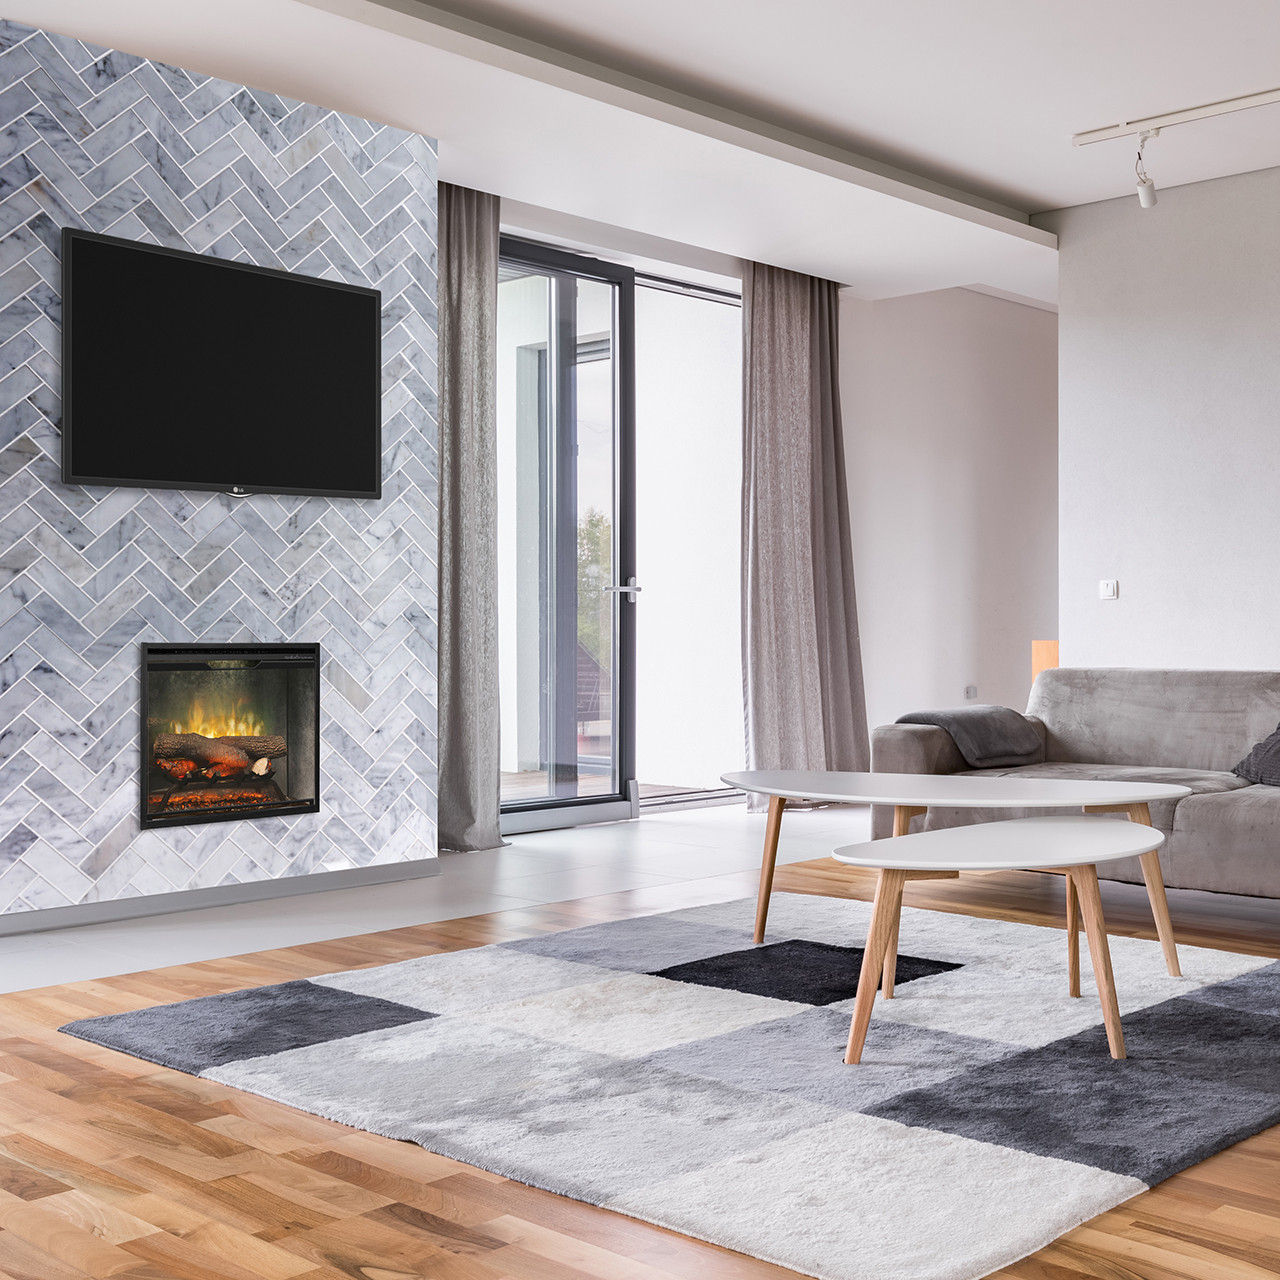 Dimplex Revillusion 24 inch Built-In Electric Firebox with Weather Concrete Backer - RBF24DLXWC